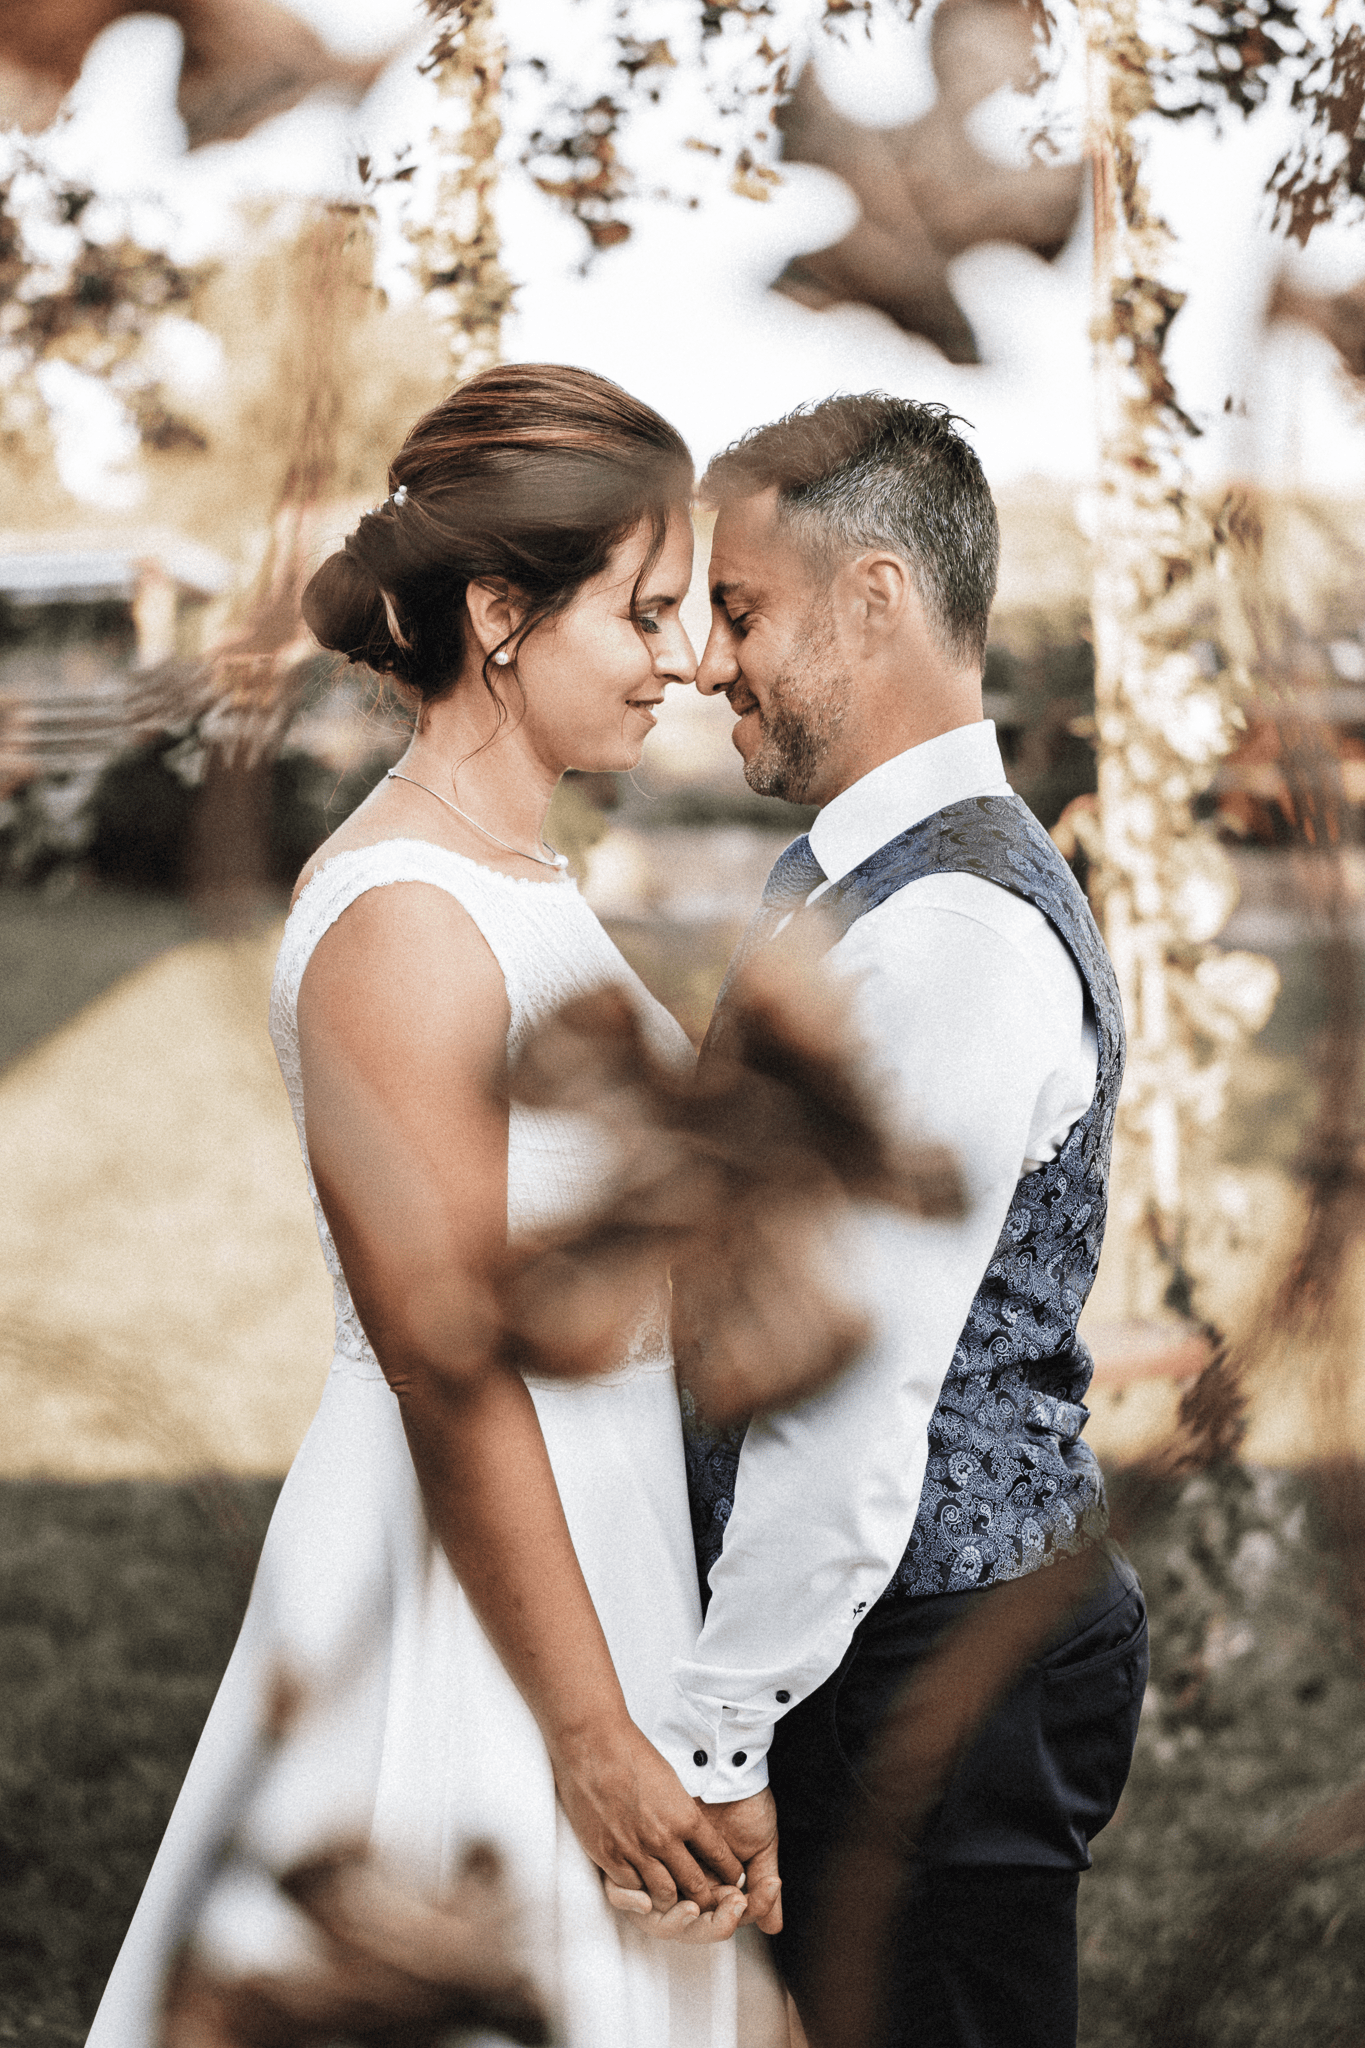 brautatelier-ried-styled shooting-fellnerhof-eva und florian-couple shot-boho-detail-1-min